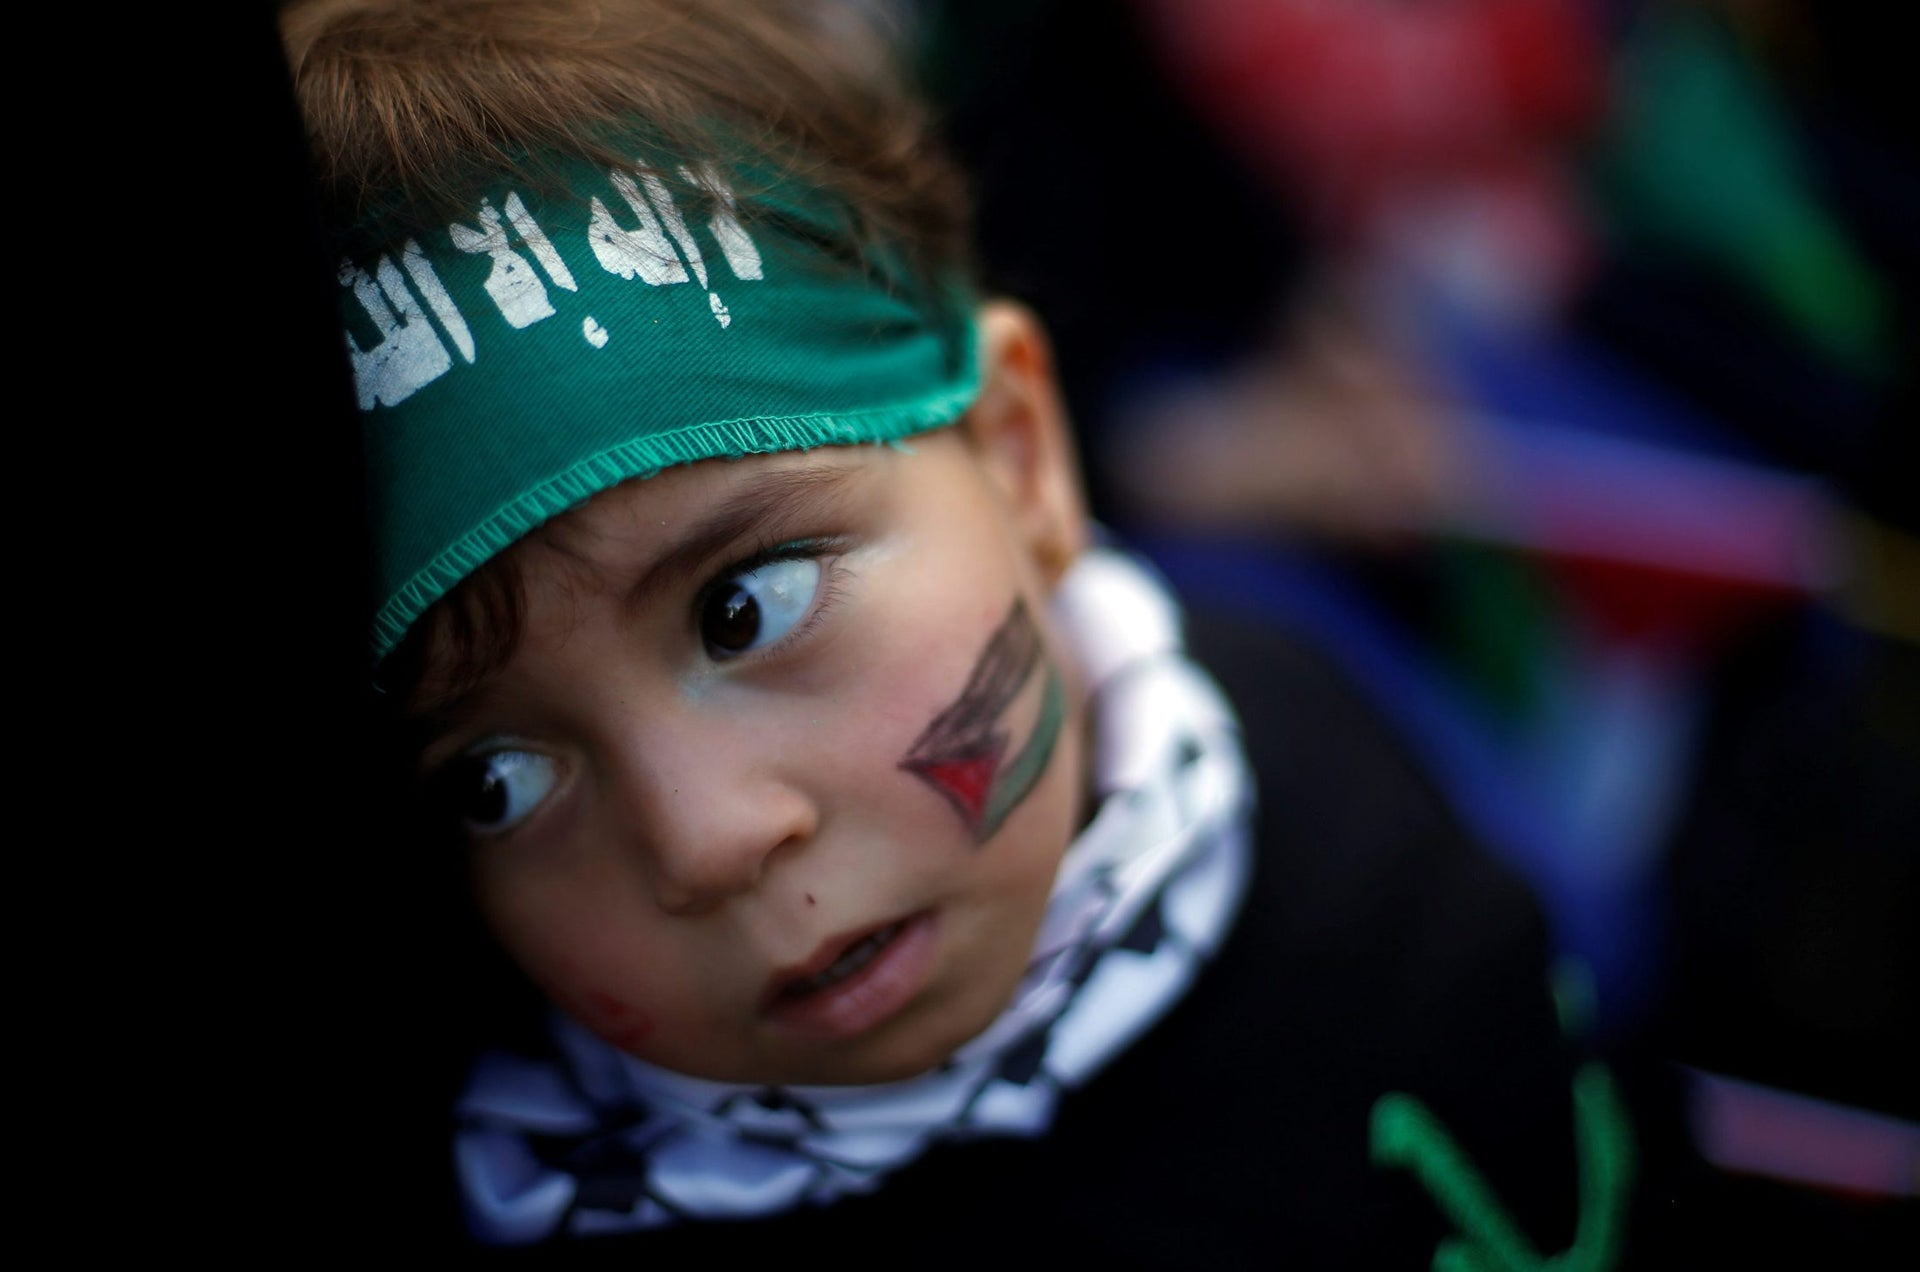 A Palestinian child wearing Hamas headband takes part in a rally marking the 30th anniversary of Hamas' founding, in Gaza City December 14, 2017. R